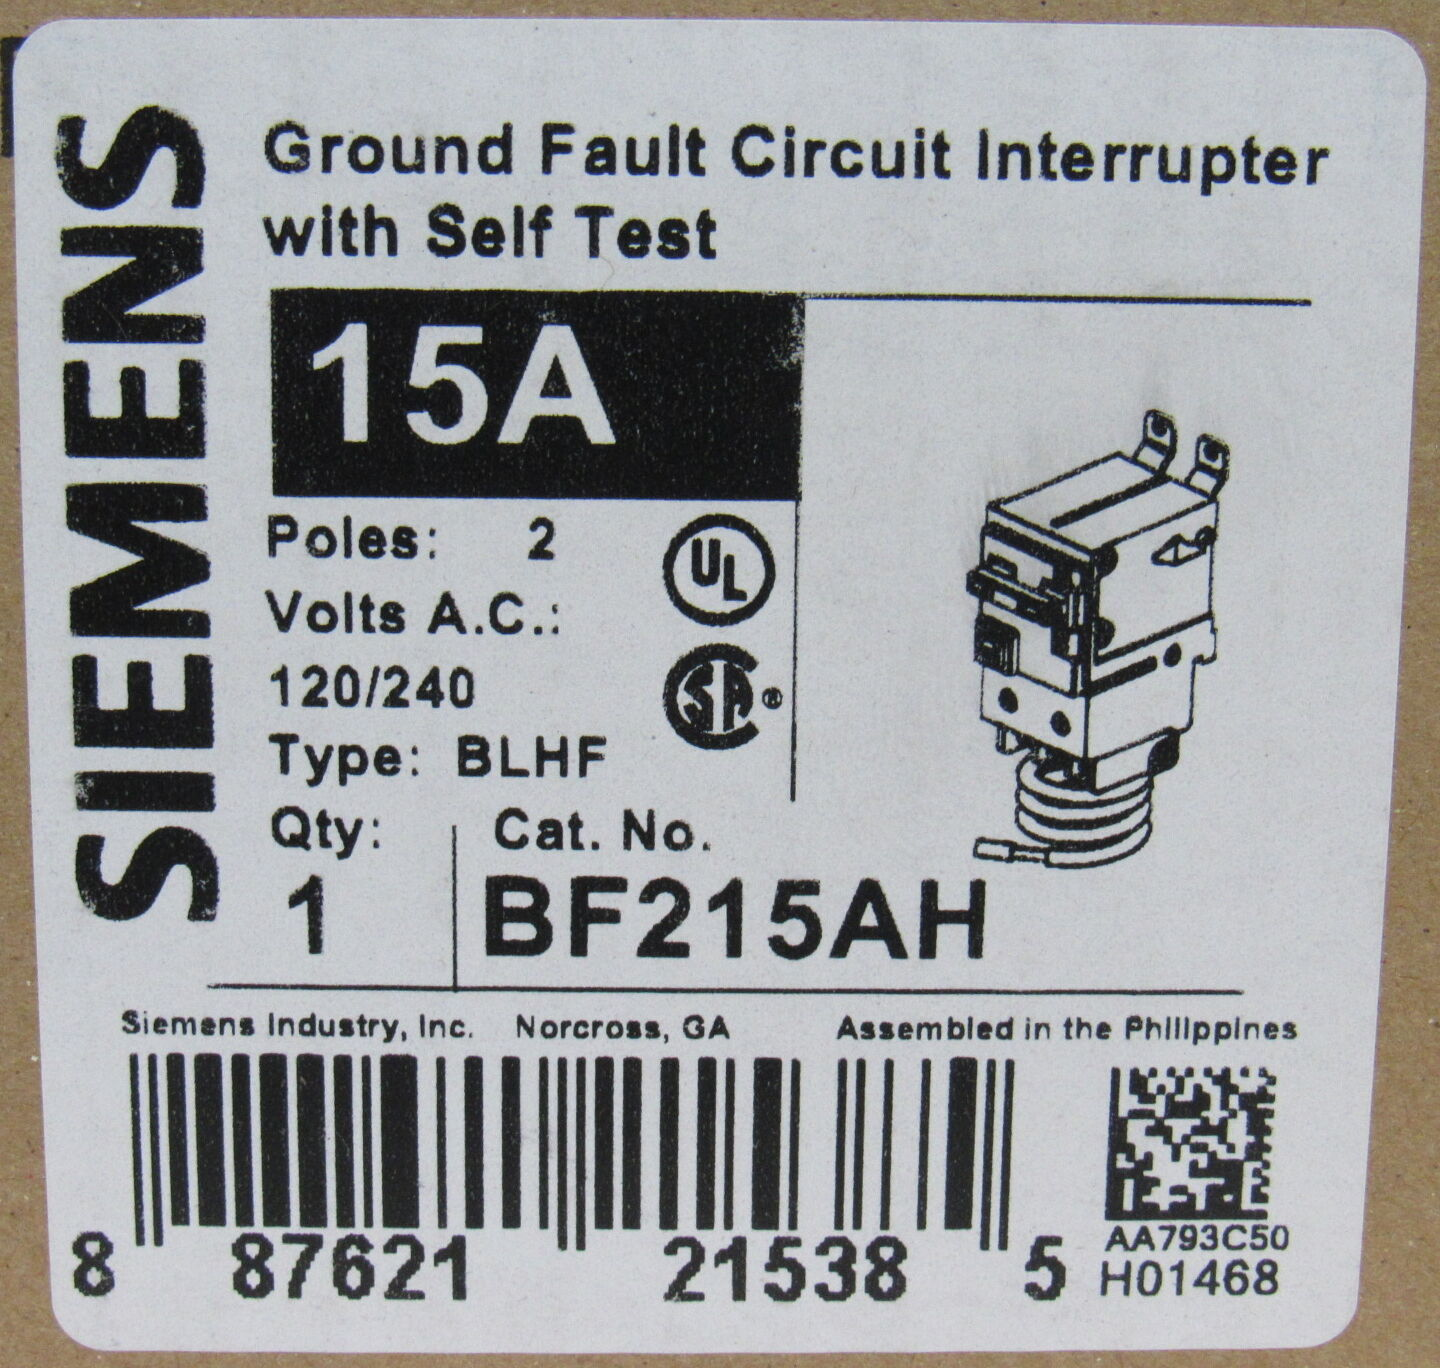 Ground Fault Circuit Interrupter Breaker Philippines Siemens Gfci 15a 2 Pole 120 240v 22 Norton Secured Powered By Verisign